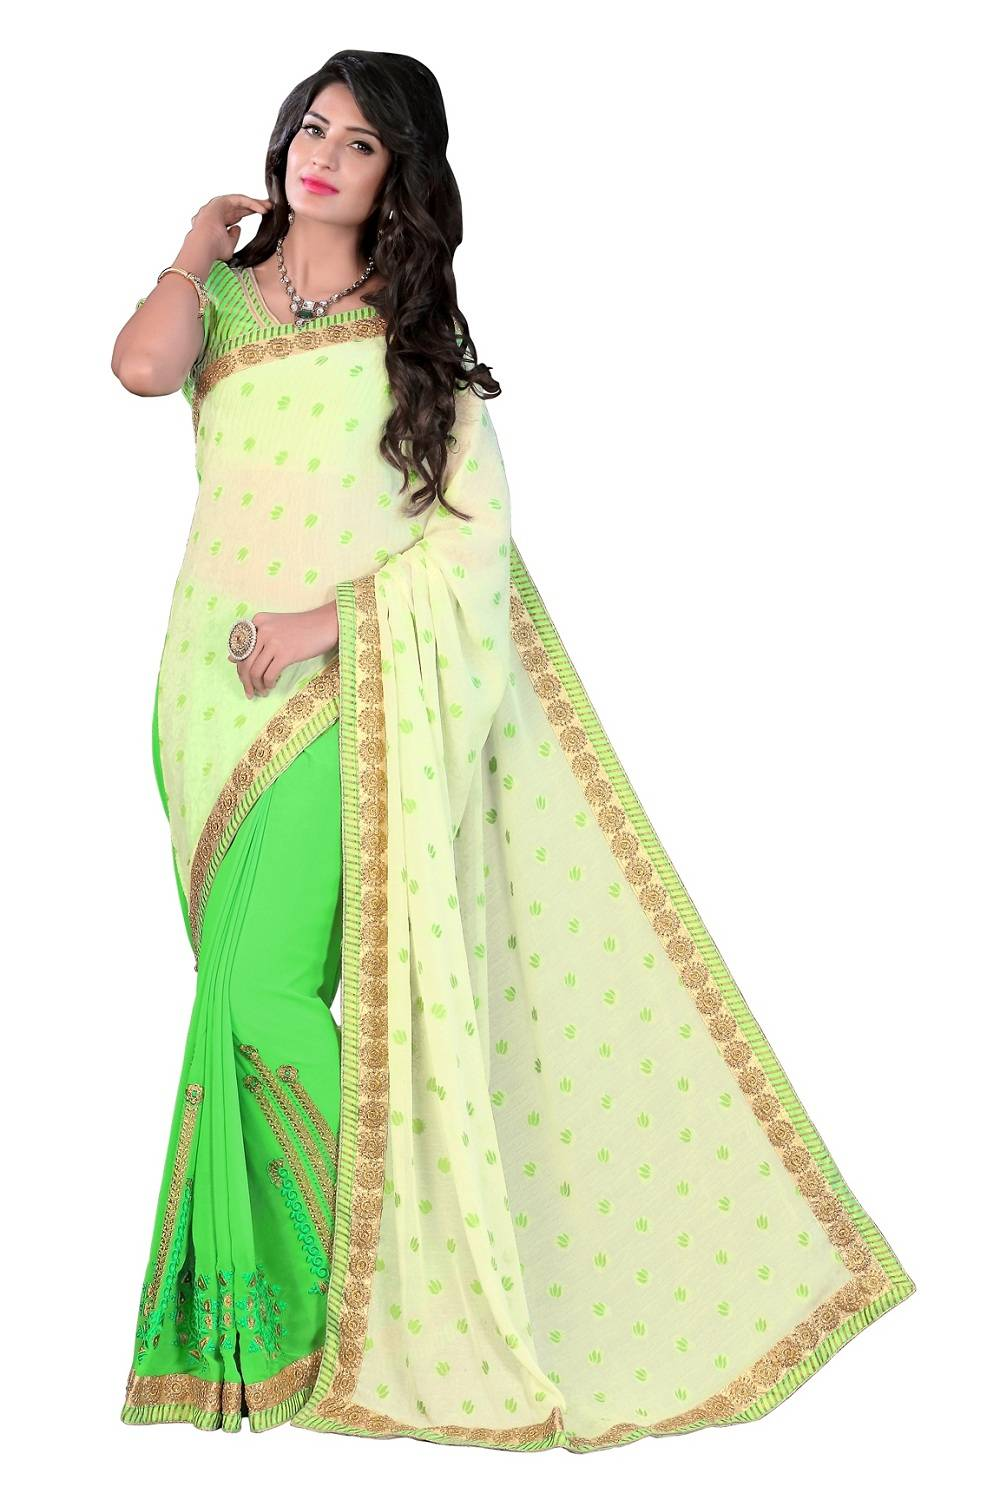 Embroidered Faux Georgette Saree (Sari) in Green